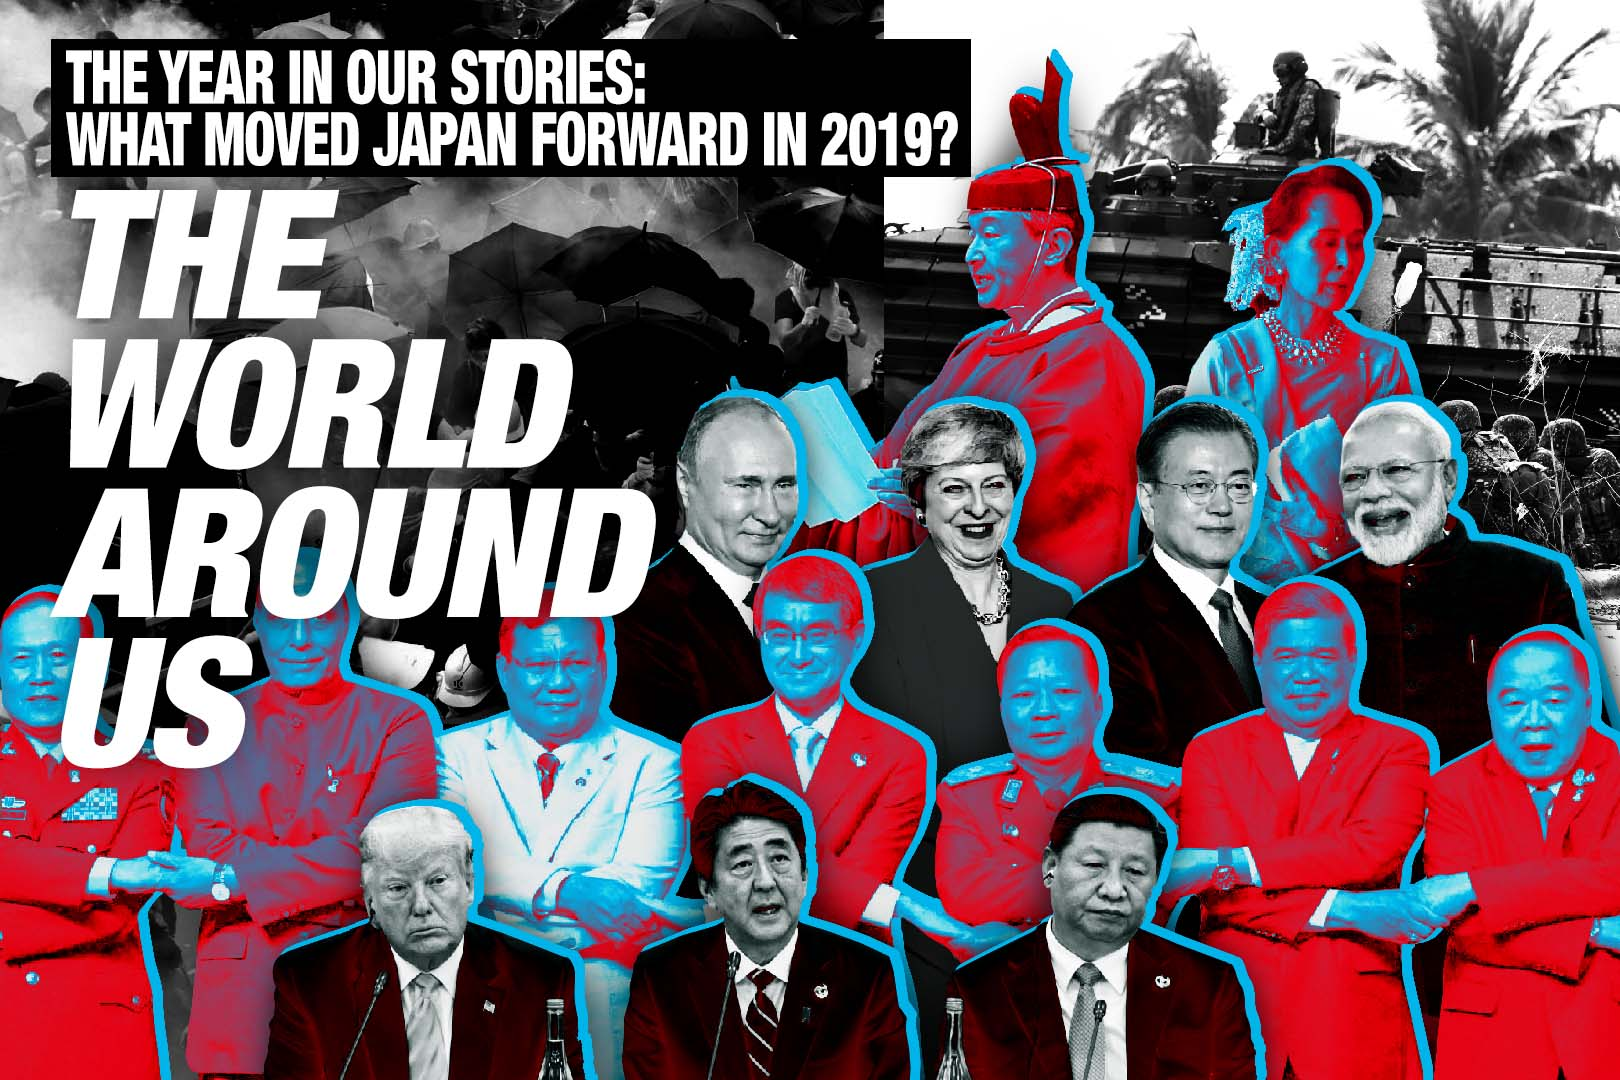 2019-the-year-in-our-stories-economy-and-technology-the-world-around-us